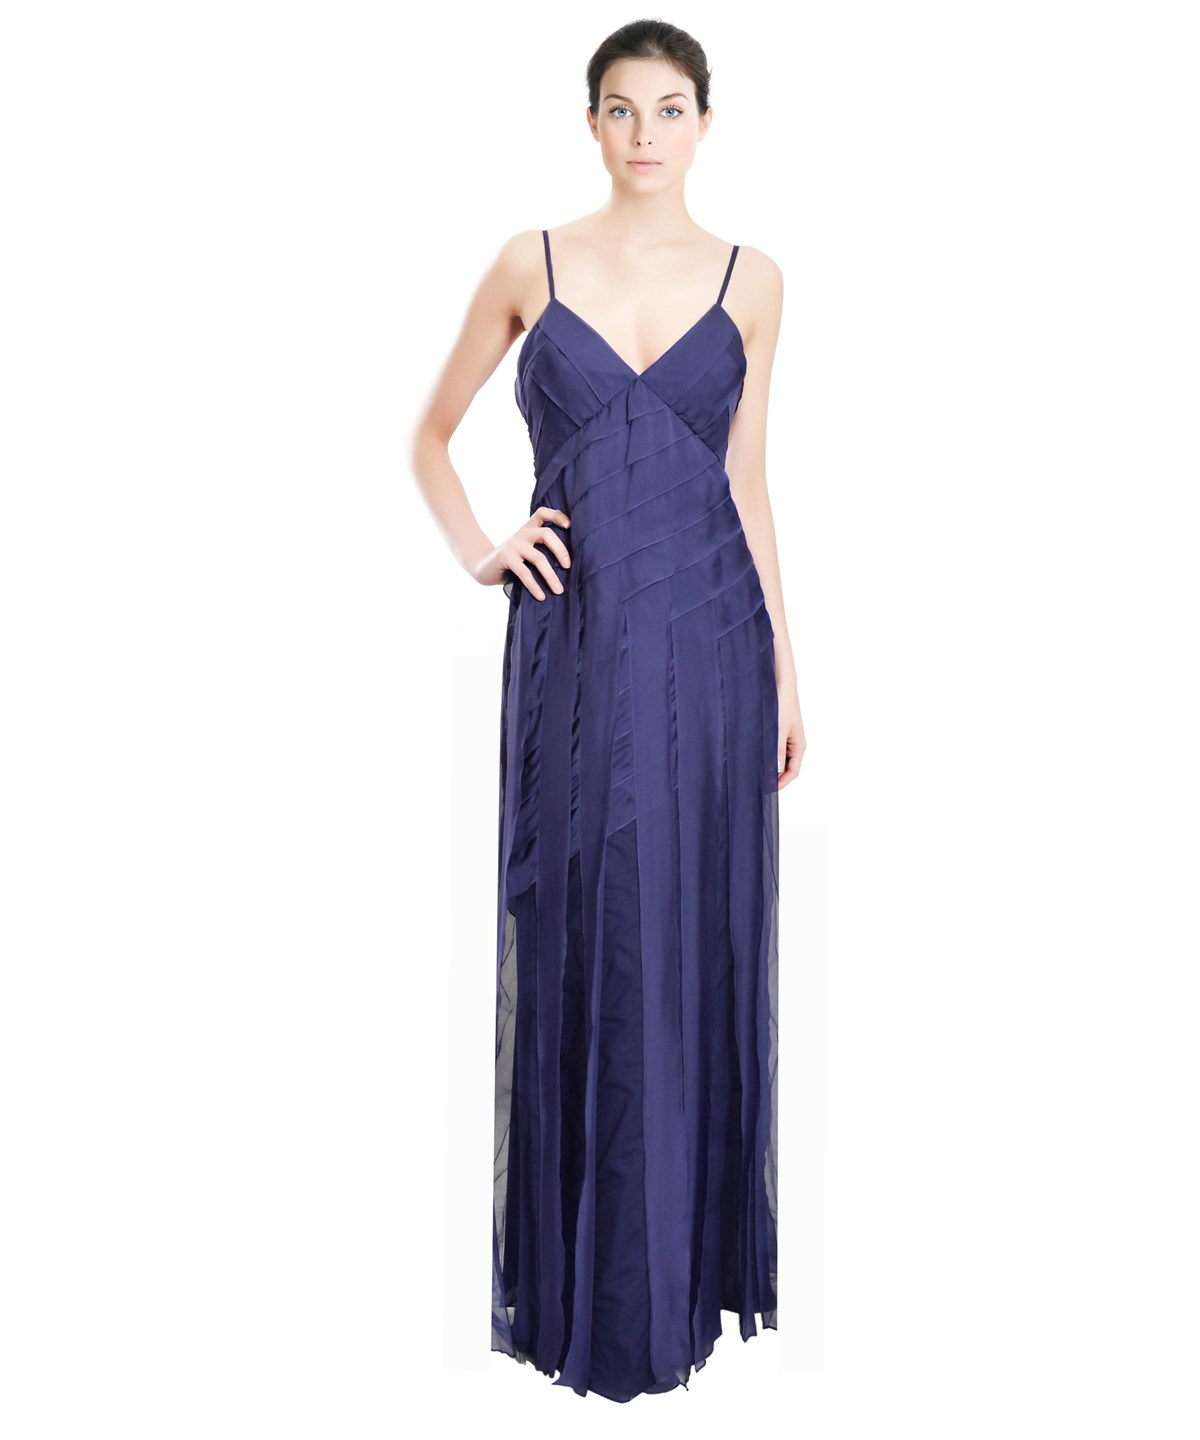 Emanuel Ungaro Cascading Ribbon Gown In Blue